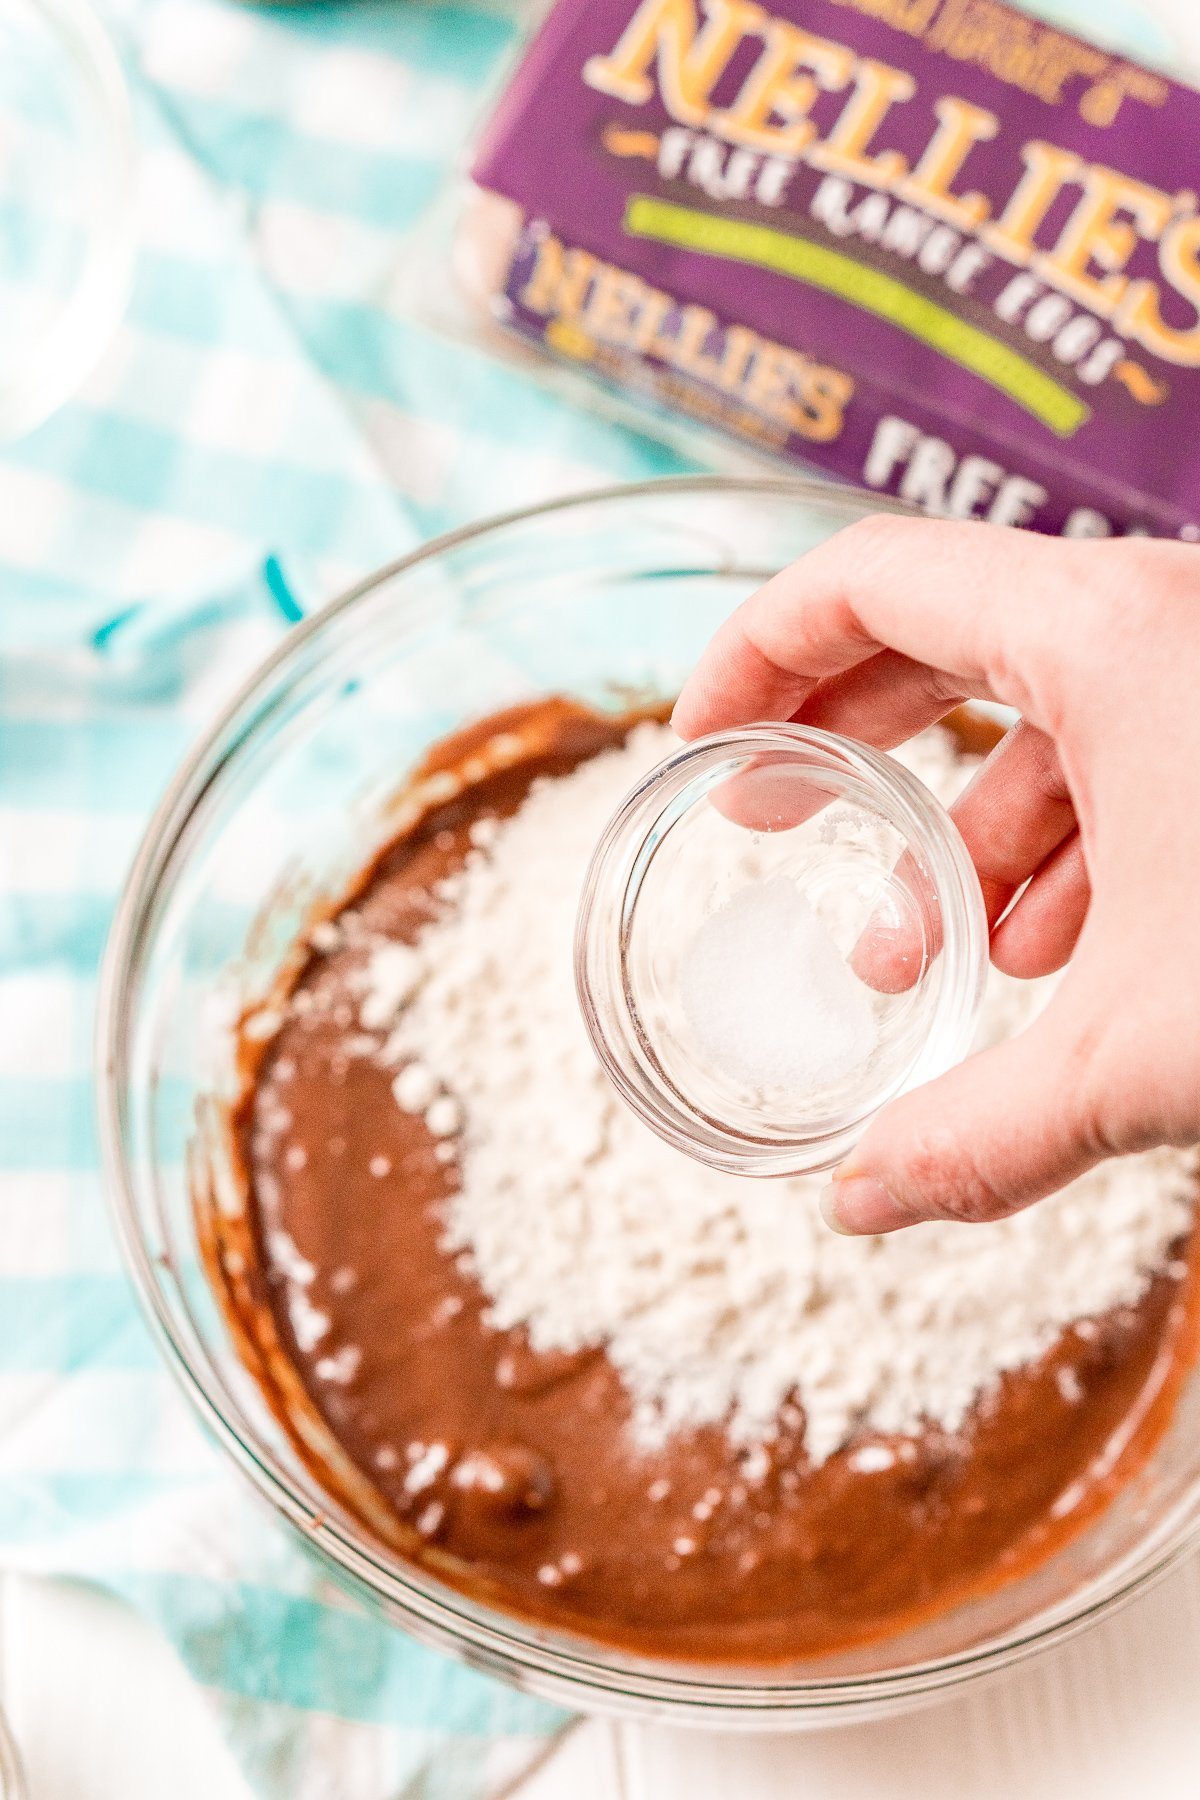 Salt being added to a bowl of brownie mix and flour.